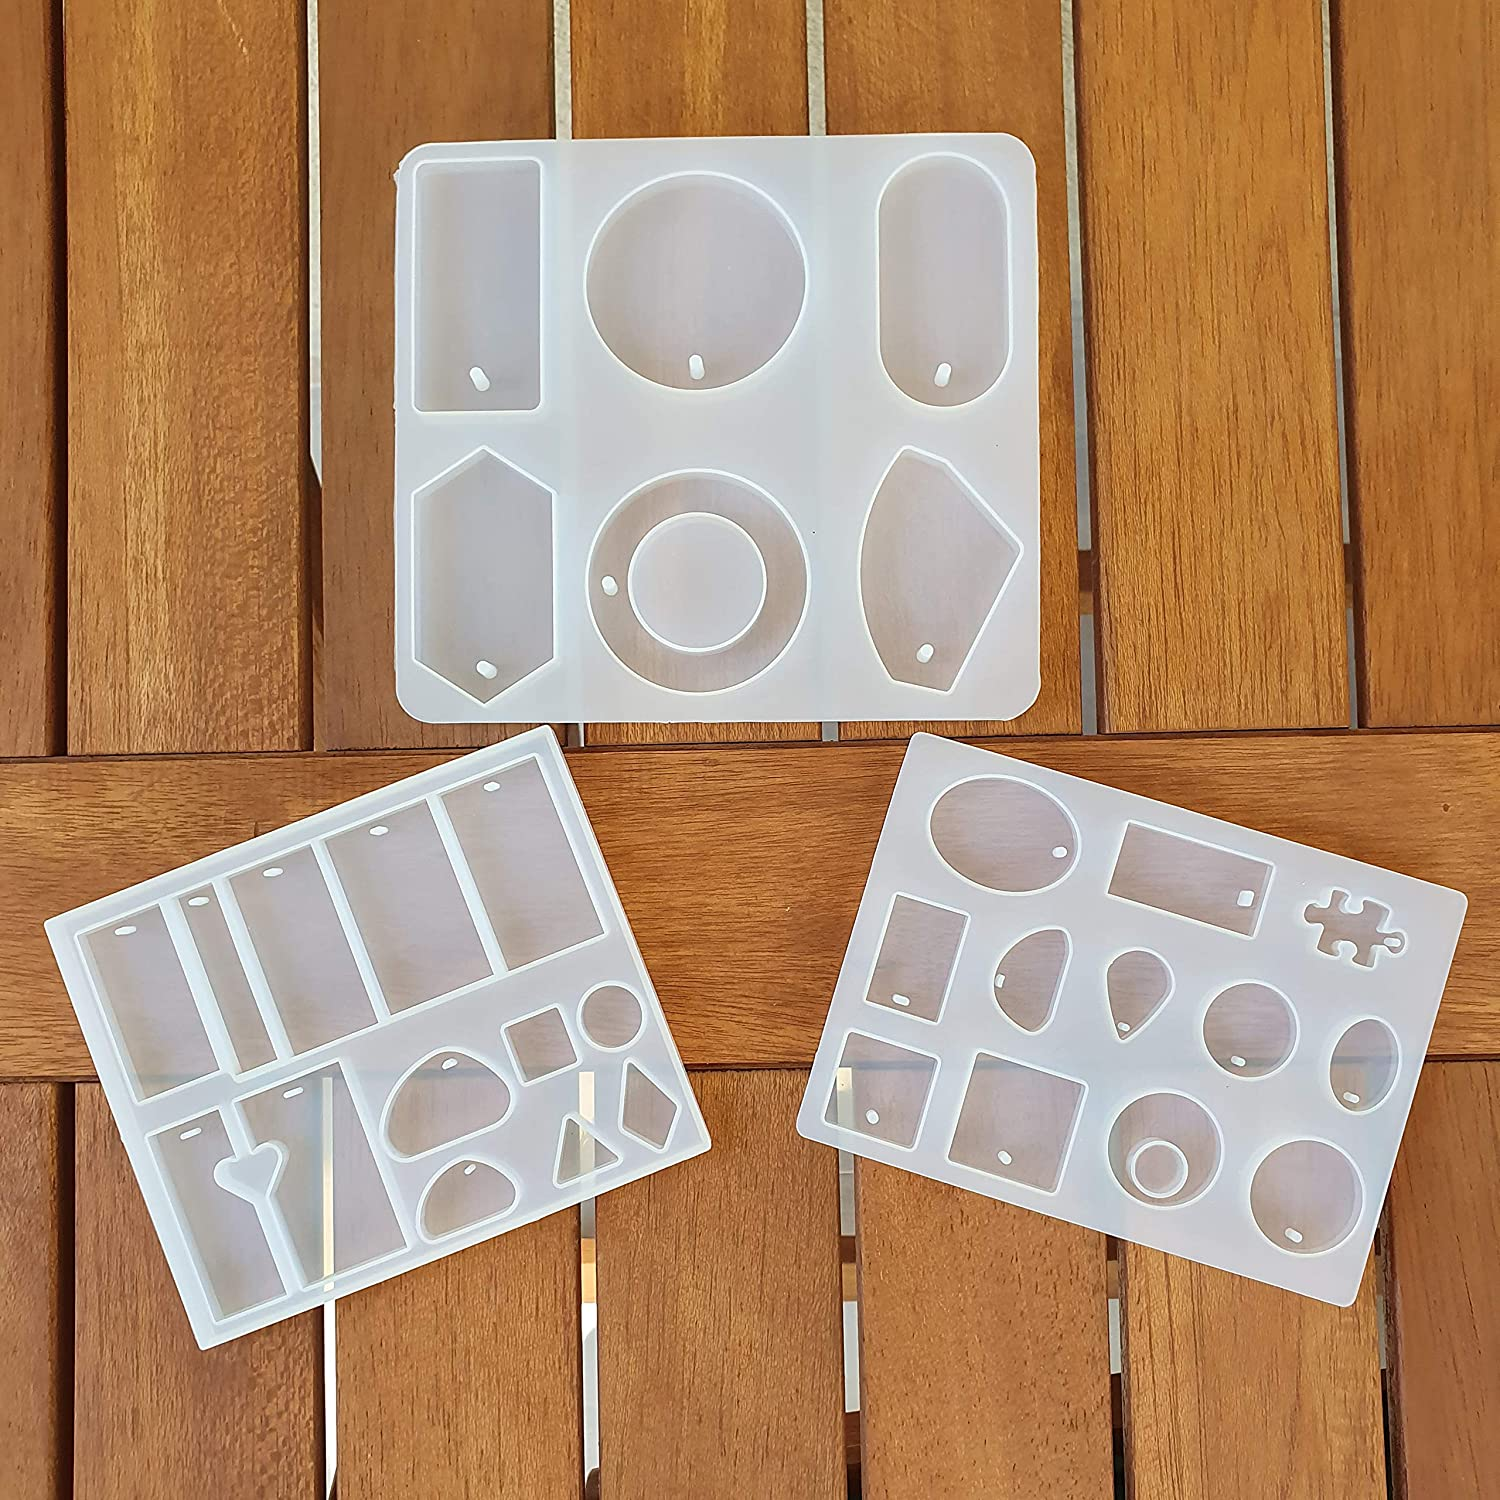 Resin Molds Silicone Jewelry Molds 3Pcs Epoxy Food Grade Silicone - Earrings with Hole Craft Making Rings Jewelry Necklace Brand New Charm Reliable Hanging Soft